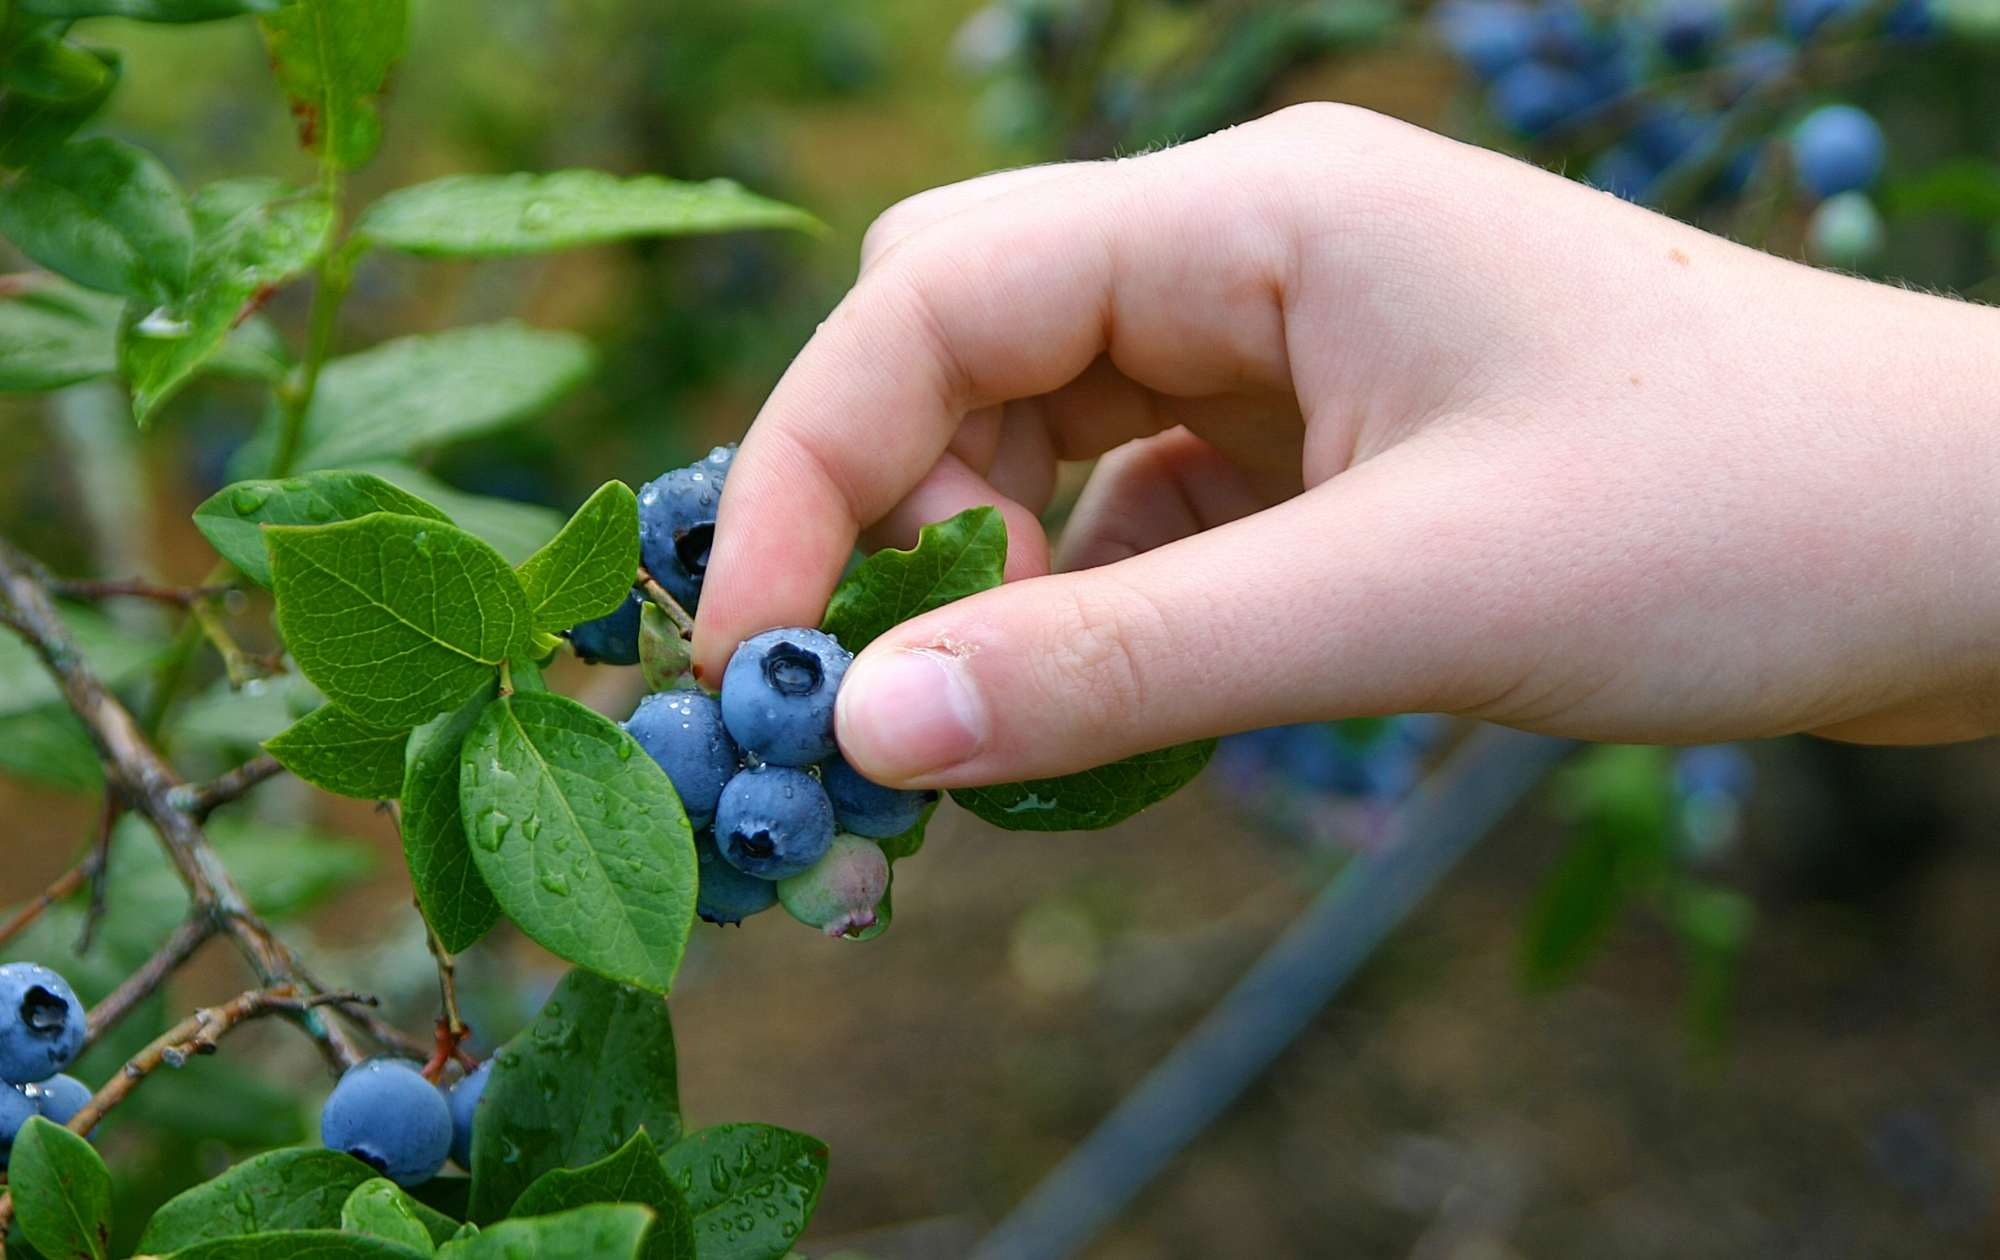 Photo of person harvesting blueberries